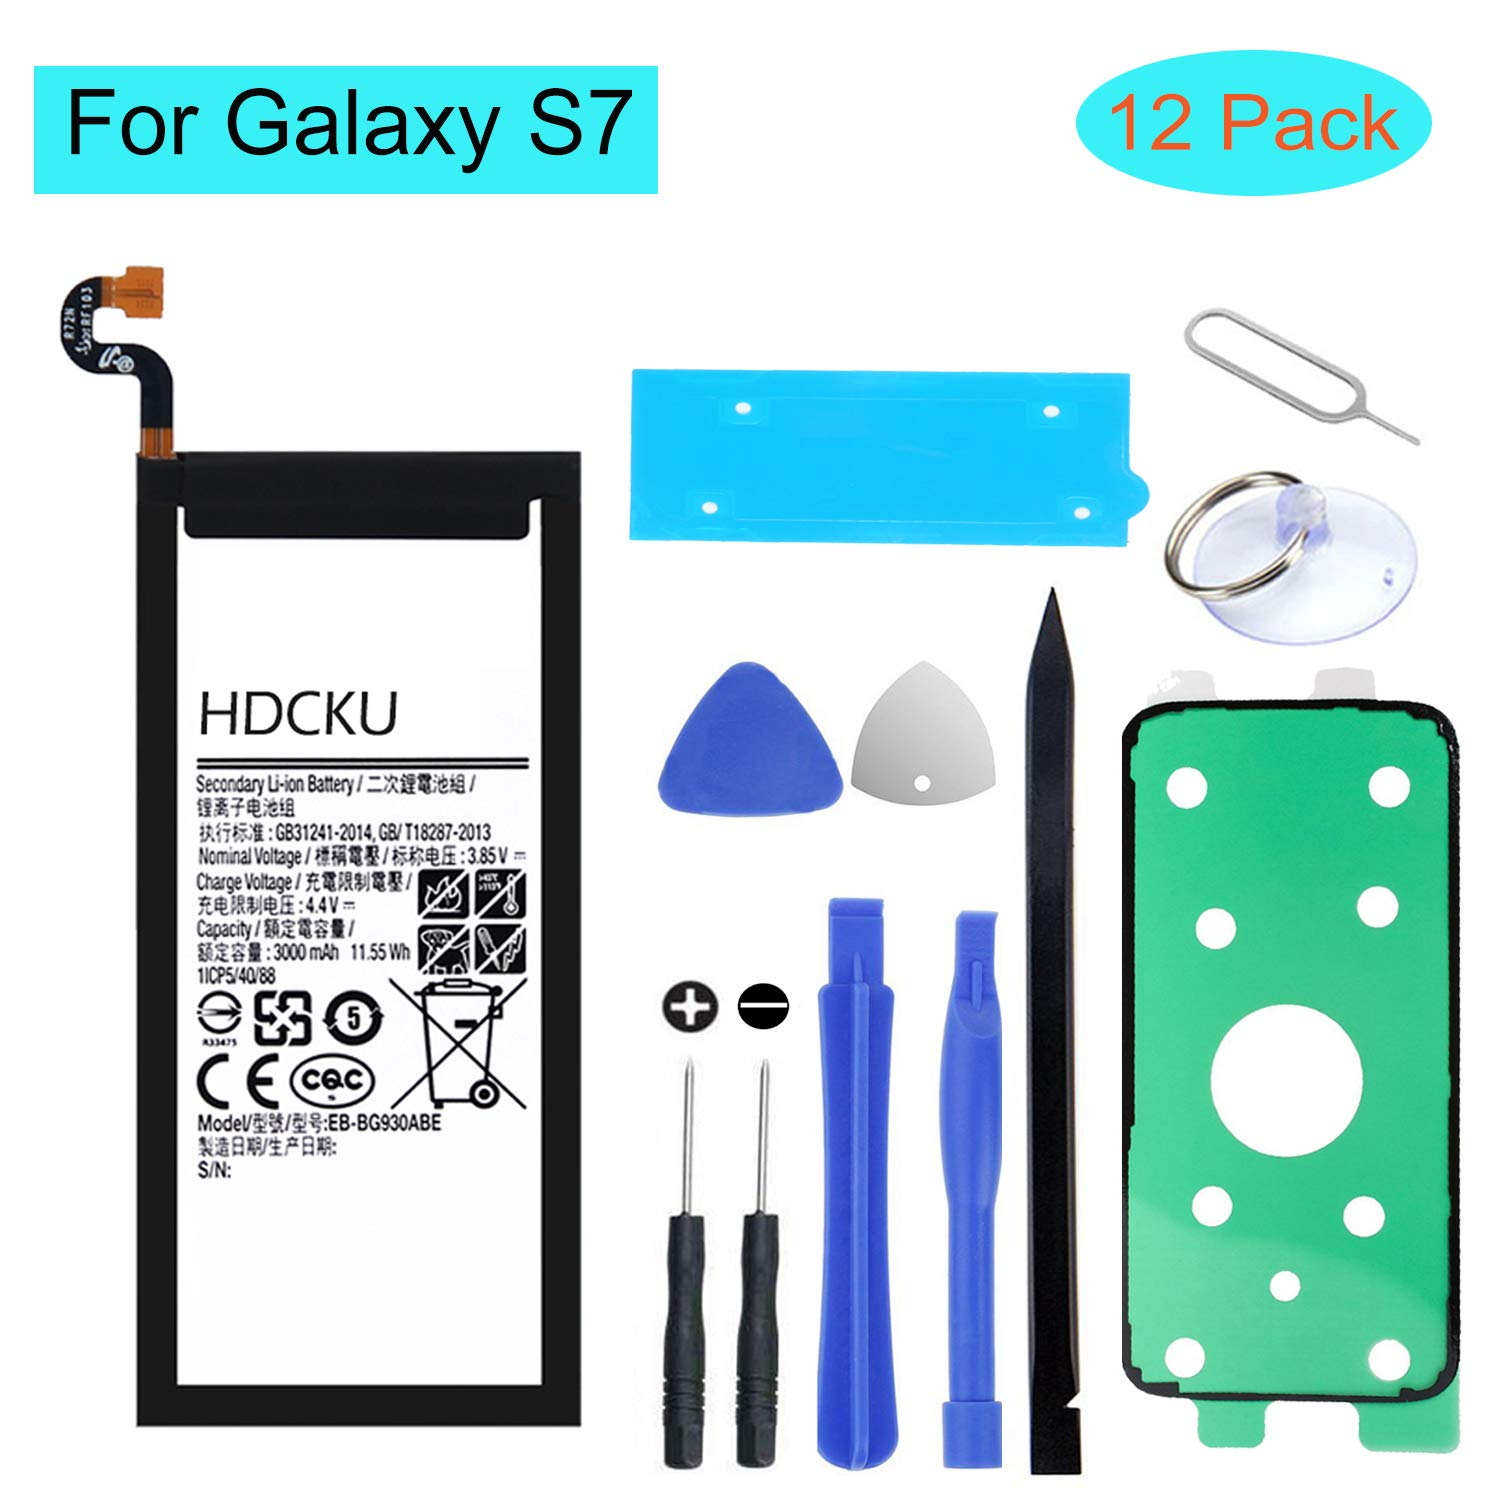 HDCKU Battery Replacement Kit for Samsung Galaxy S7 Battery SM-G930 (EB-BG930ABE) with Full Repair Tools and Instructions, Not Work for S7 Active(12 Month Warranty)